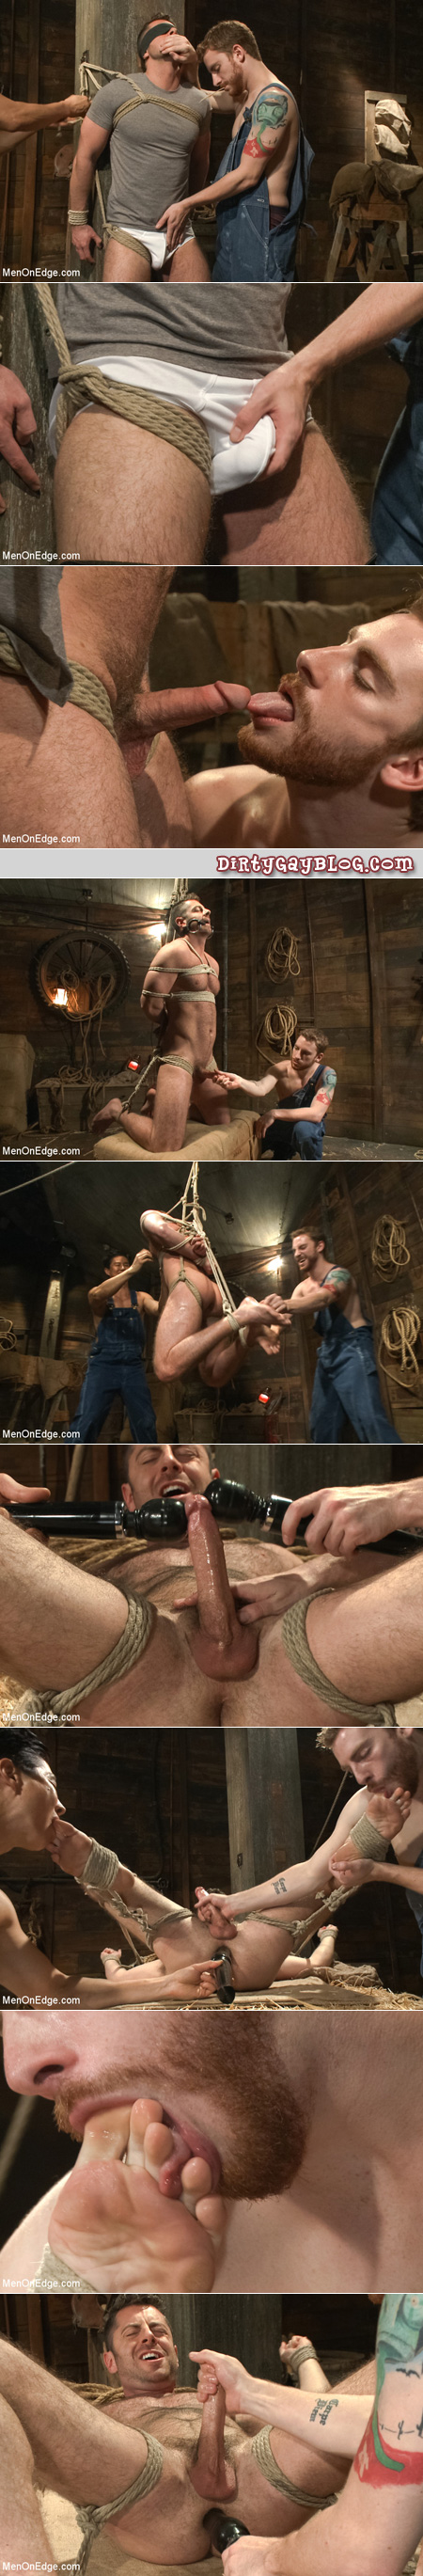 Hairy man is tied up by two male rednecks so they can explore his masculine body with their toys and tongues.